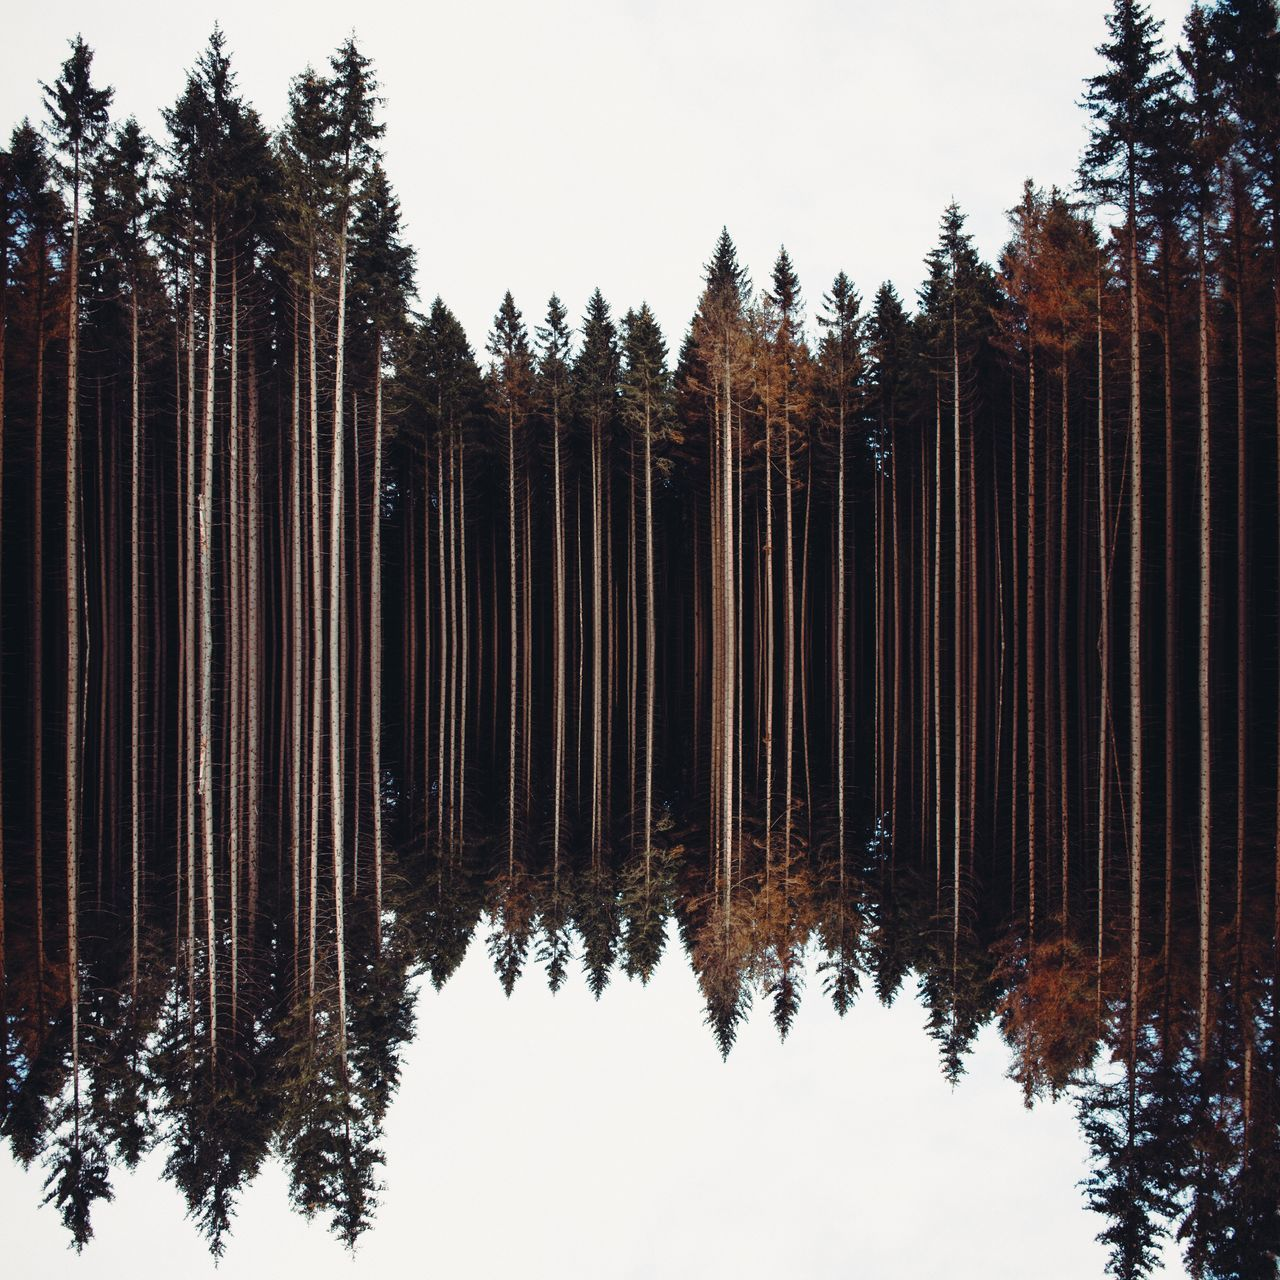 Woods harz brocken Nature forest outdoors day Tree woods Travel Wanderlust Reflection reflections no people POTD picoftheday photooftheday sky abstract ArtWork artworks germany europe Sachsen-Anhalt EyeEmNewHere